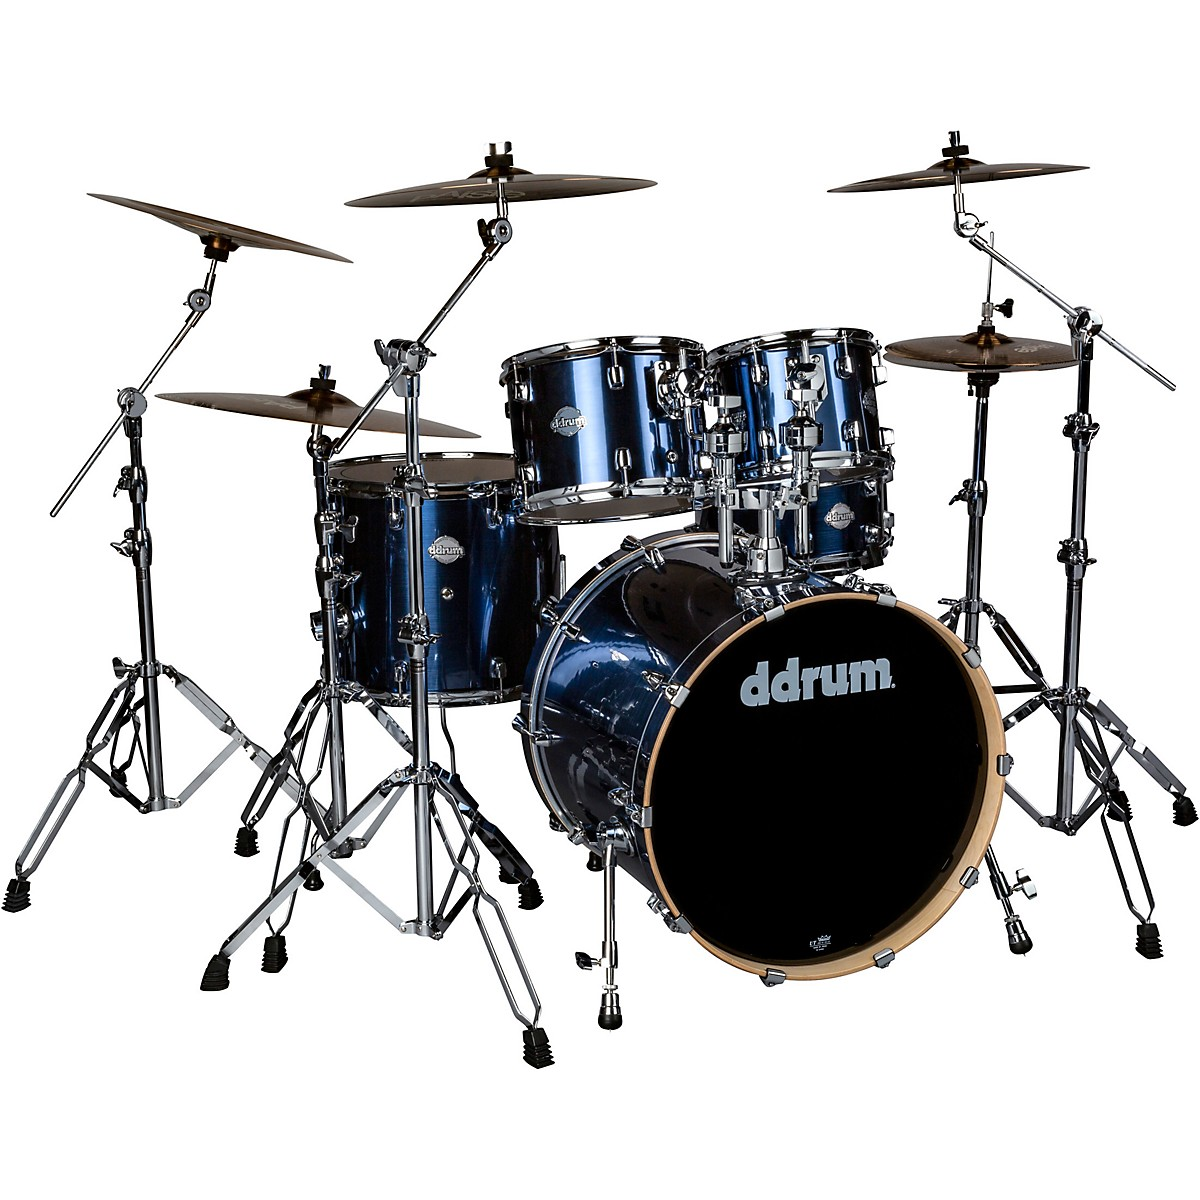 ddrum Dominion Series Birch 5-Piece Shell Pack